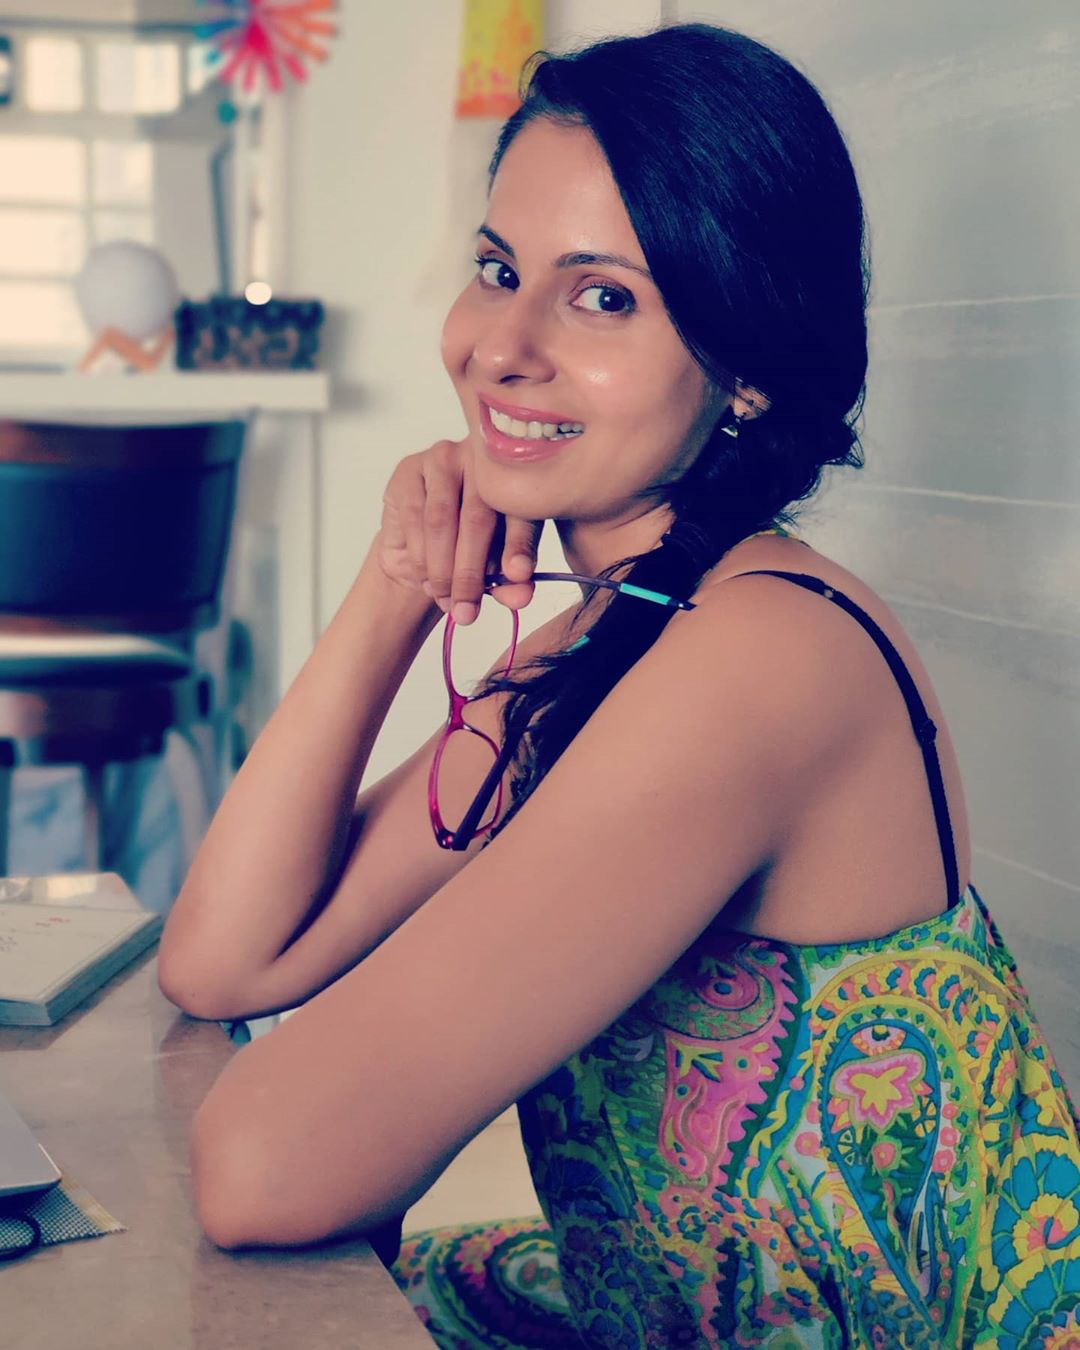 Chhavi Mittal, an Indian film and television actress, co-founder of Shitty Ideas Trending(SIT), a digital production company.